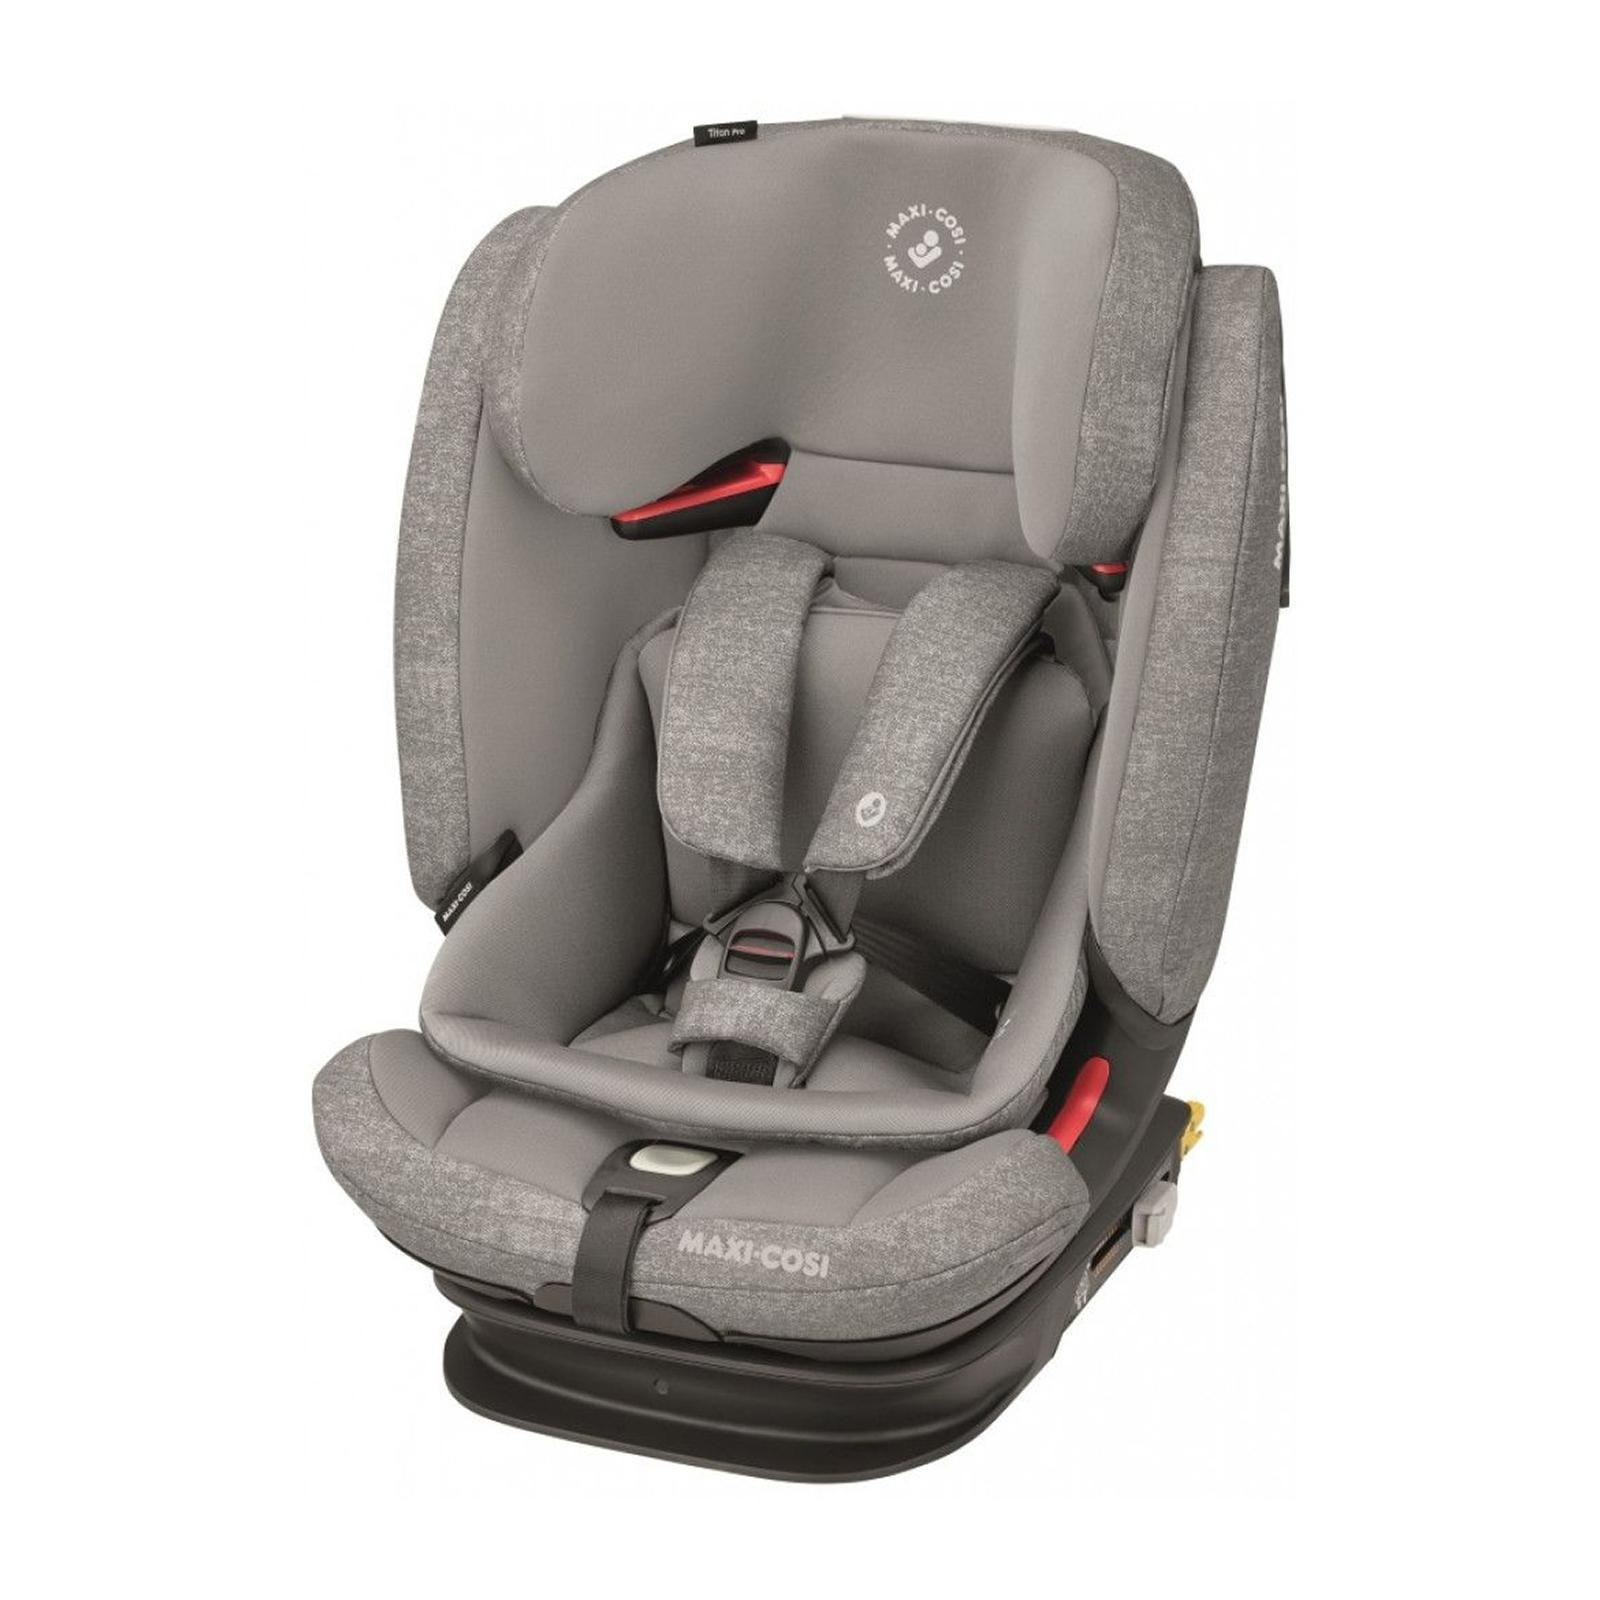 Buy Baby Car Seats | Kids Safety Car Seats